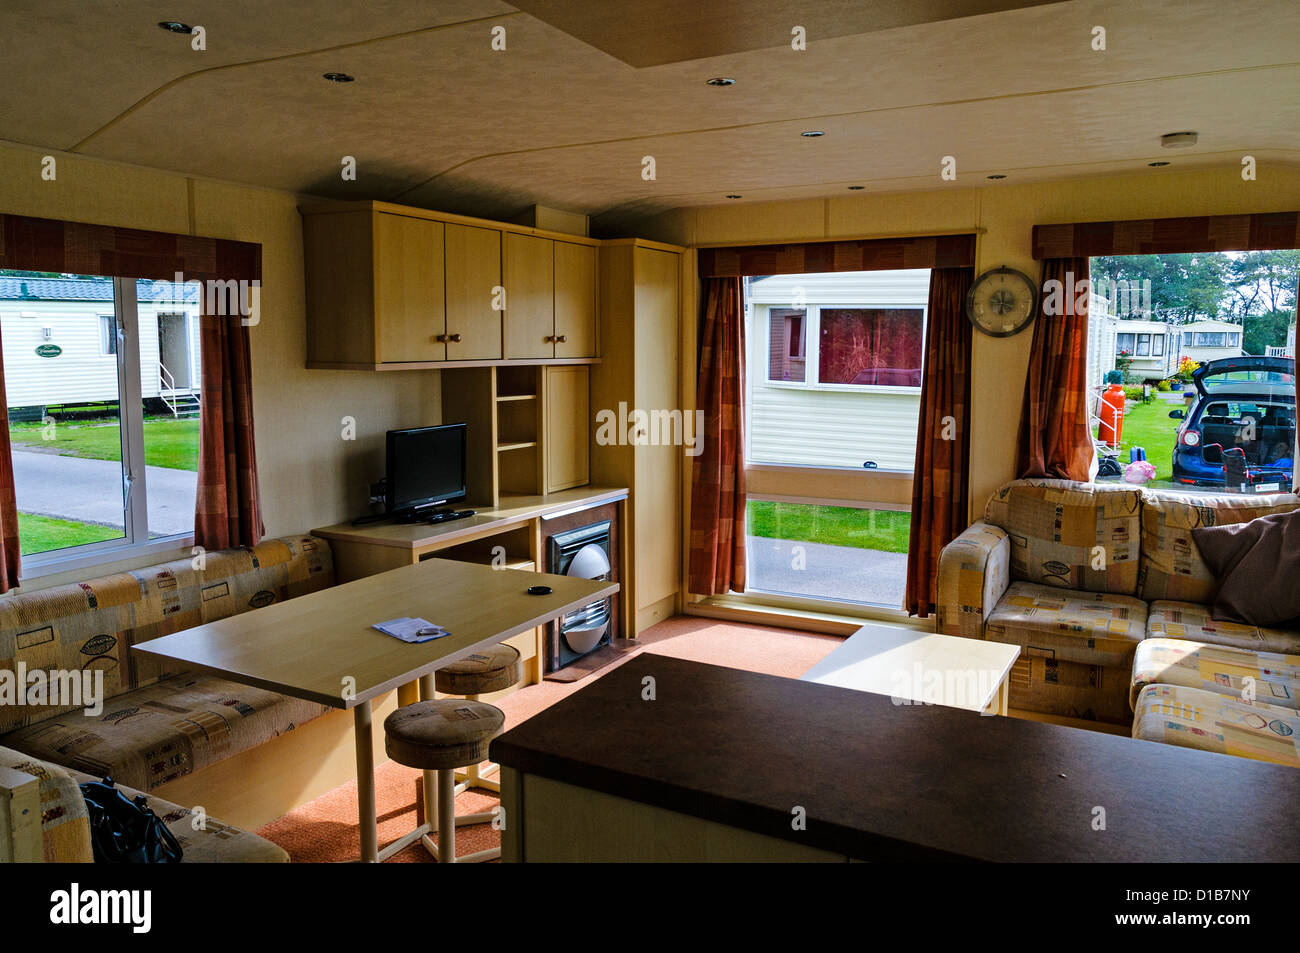 Amenagement Interieur Caravane Pliante holiday caravan interior photos & holiday caravan interior